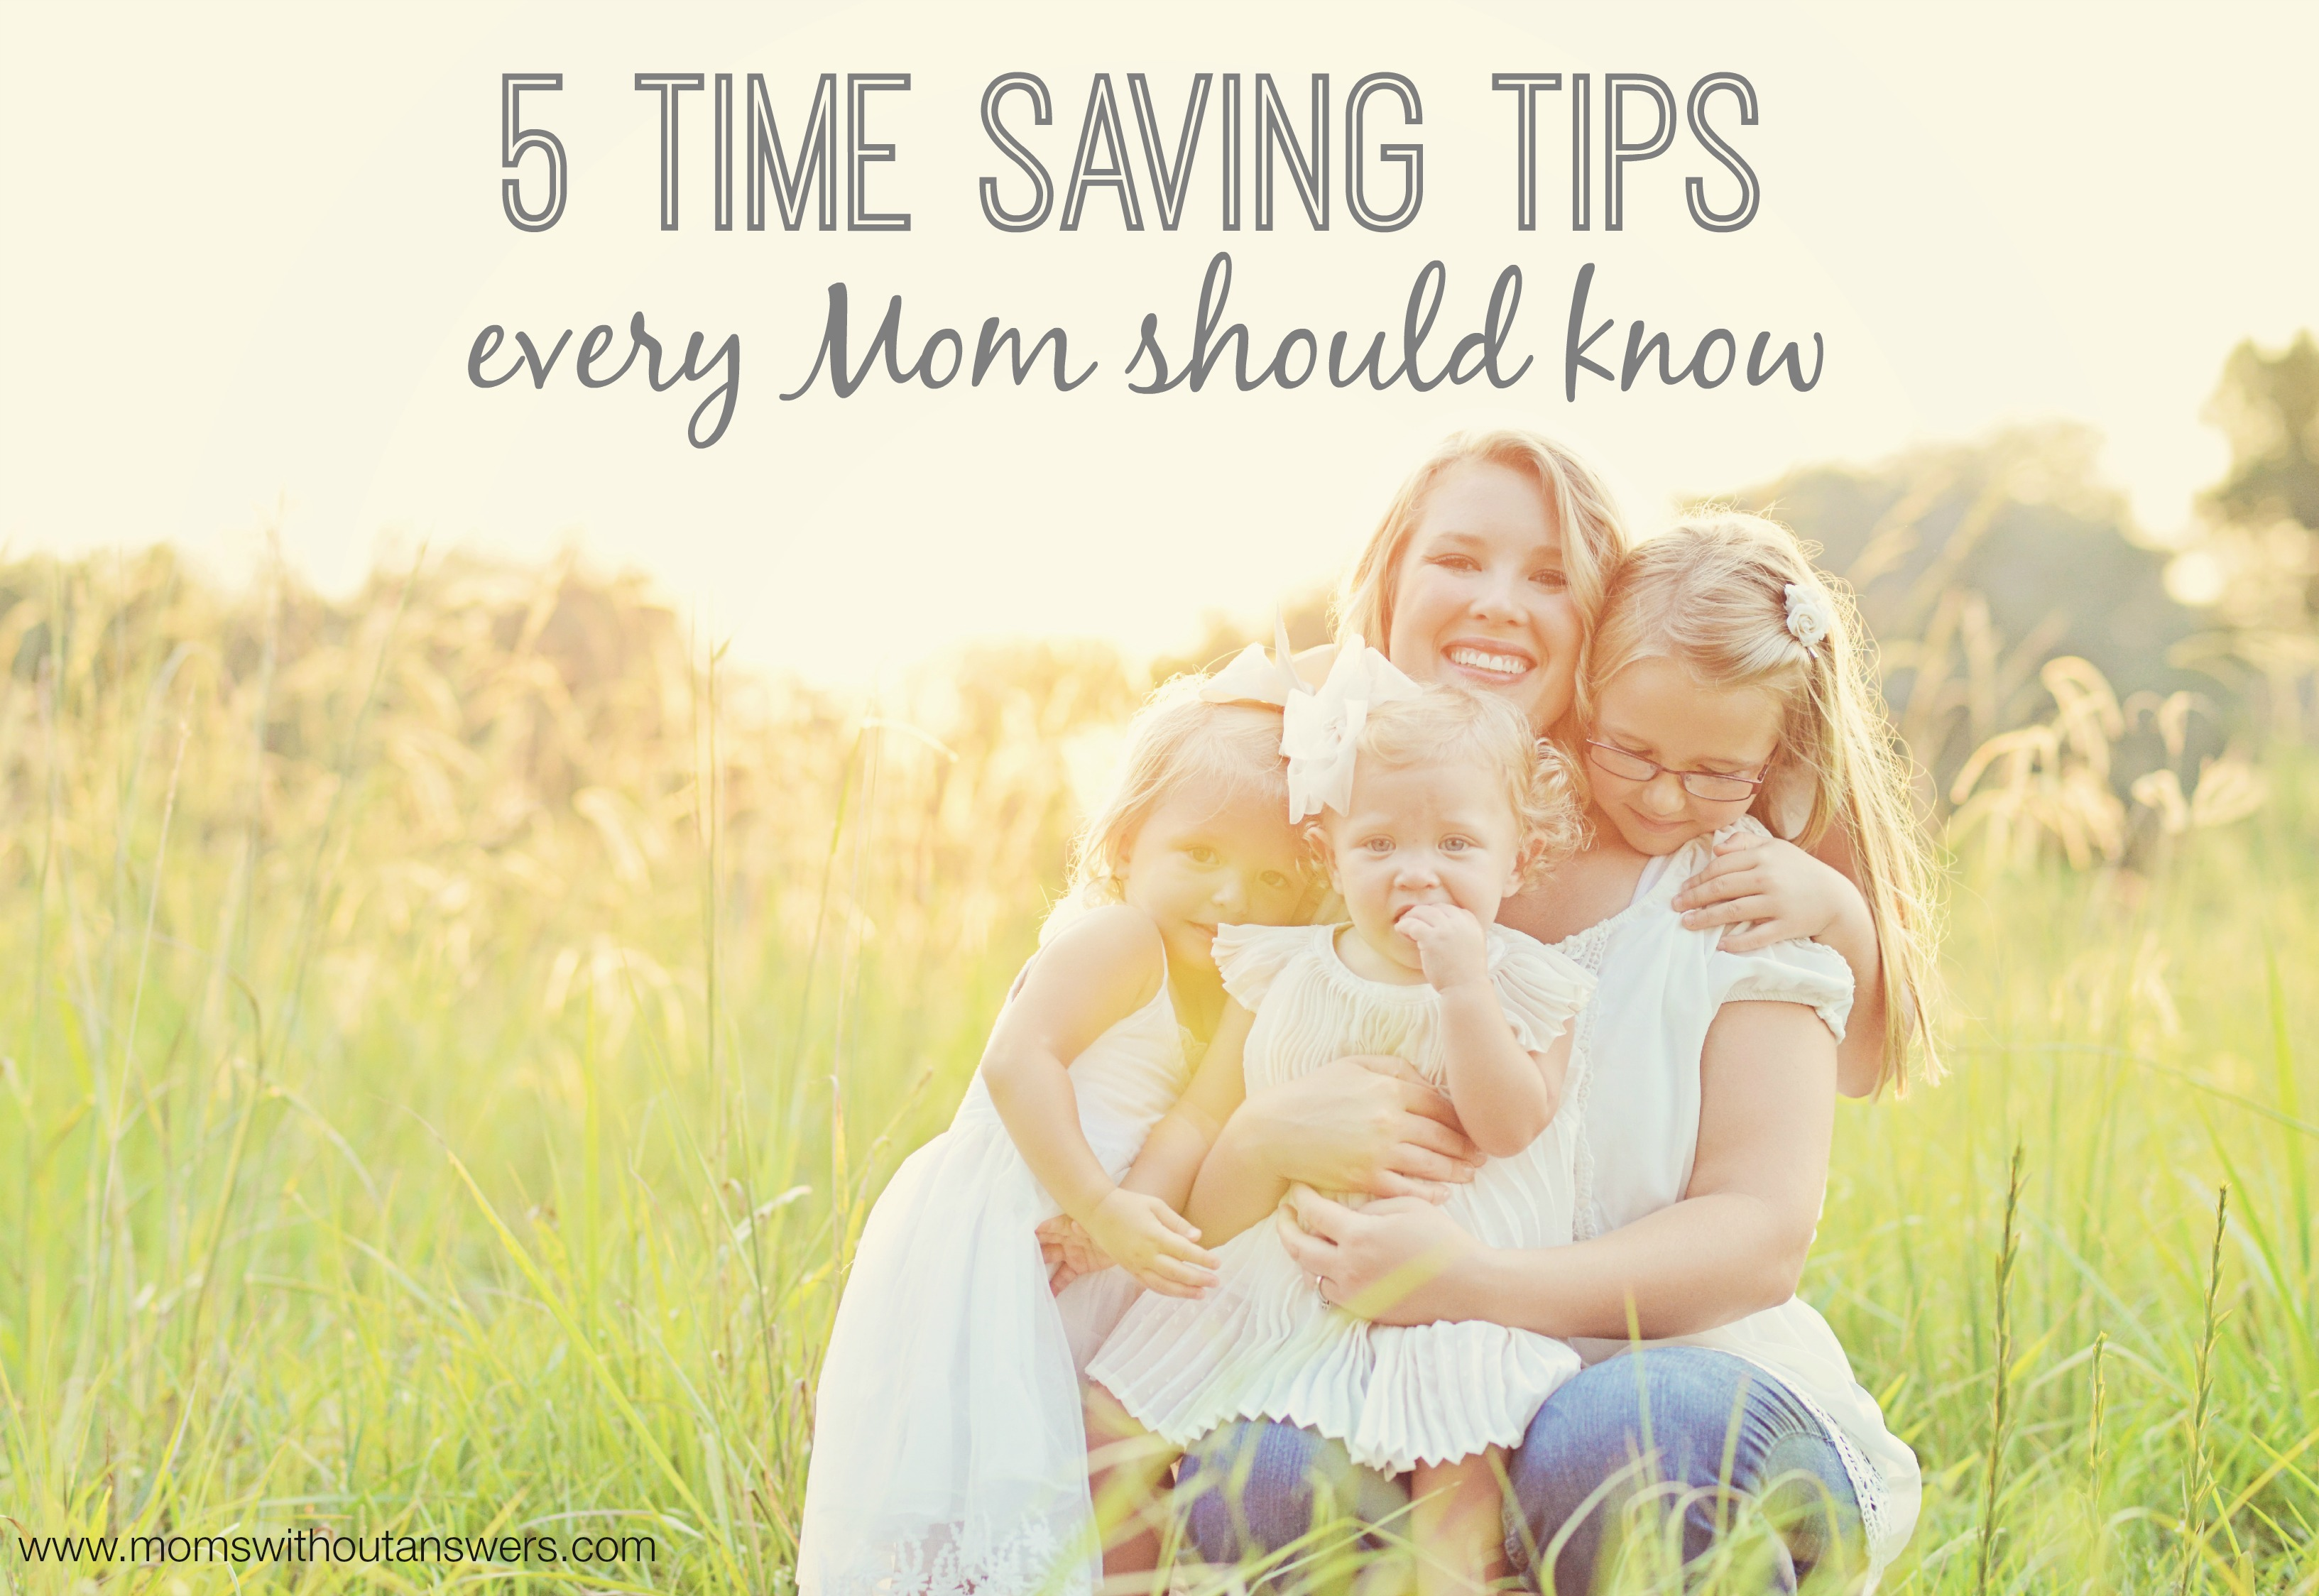 5 Time Saving Tips Every Mom Should Know